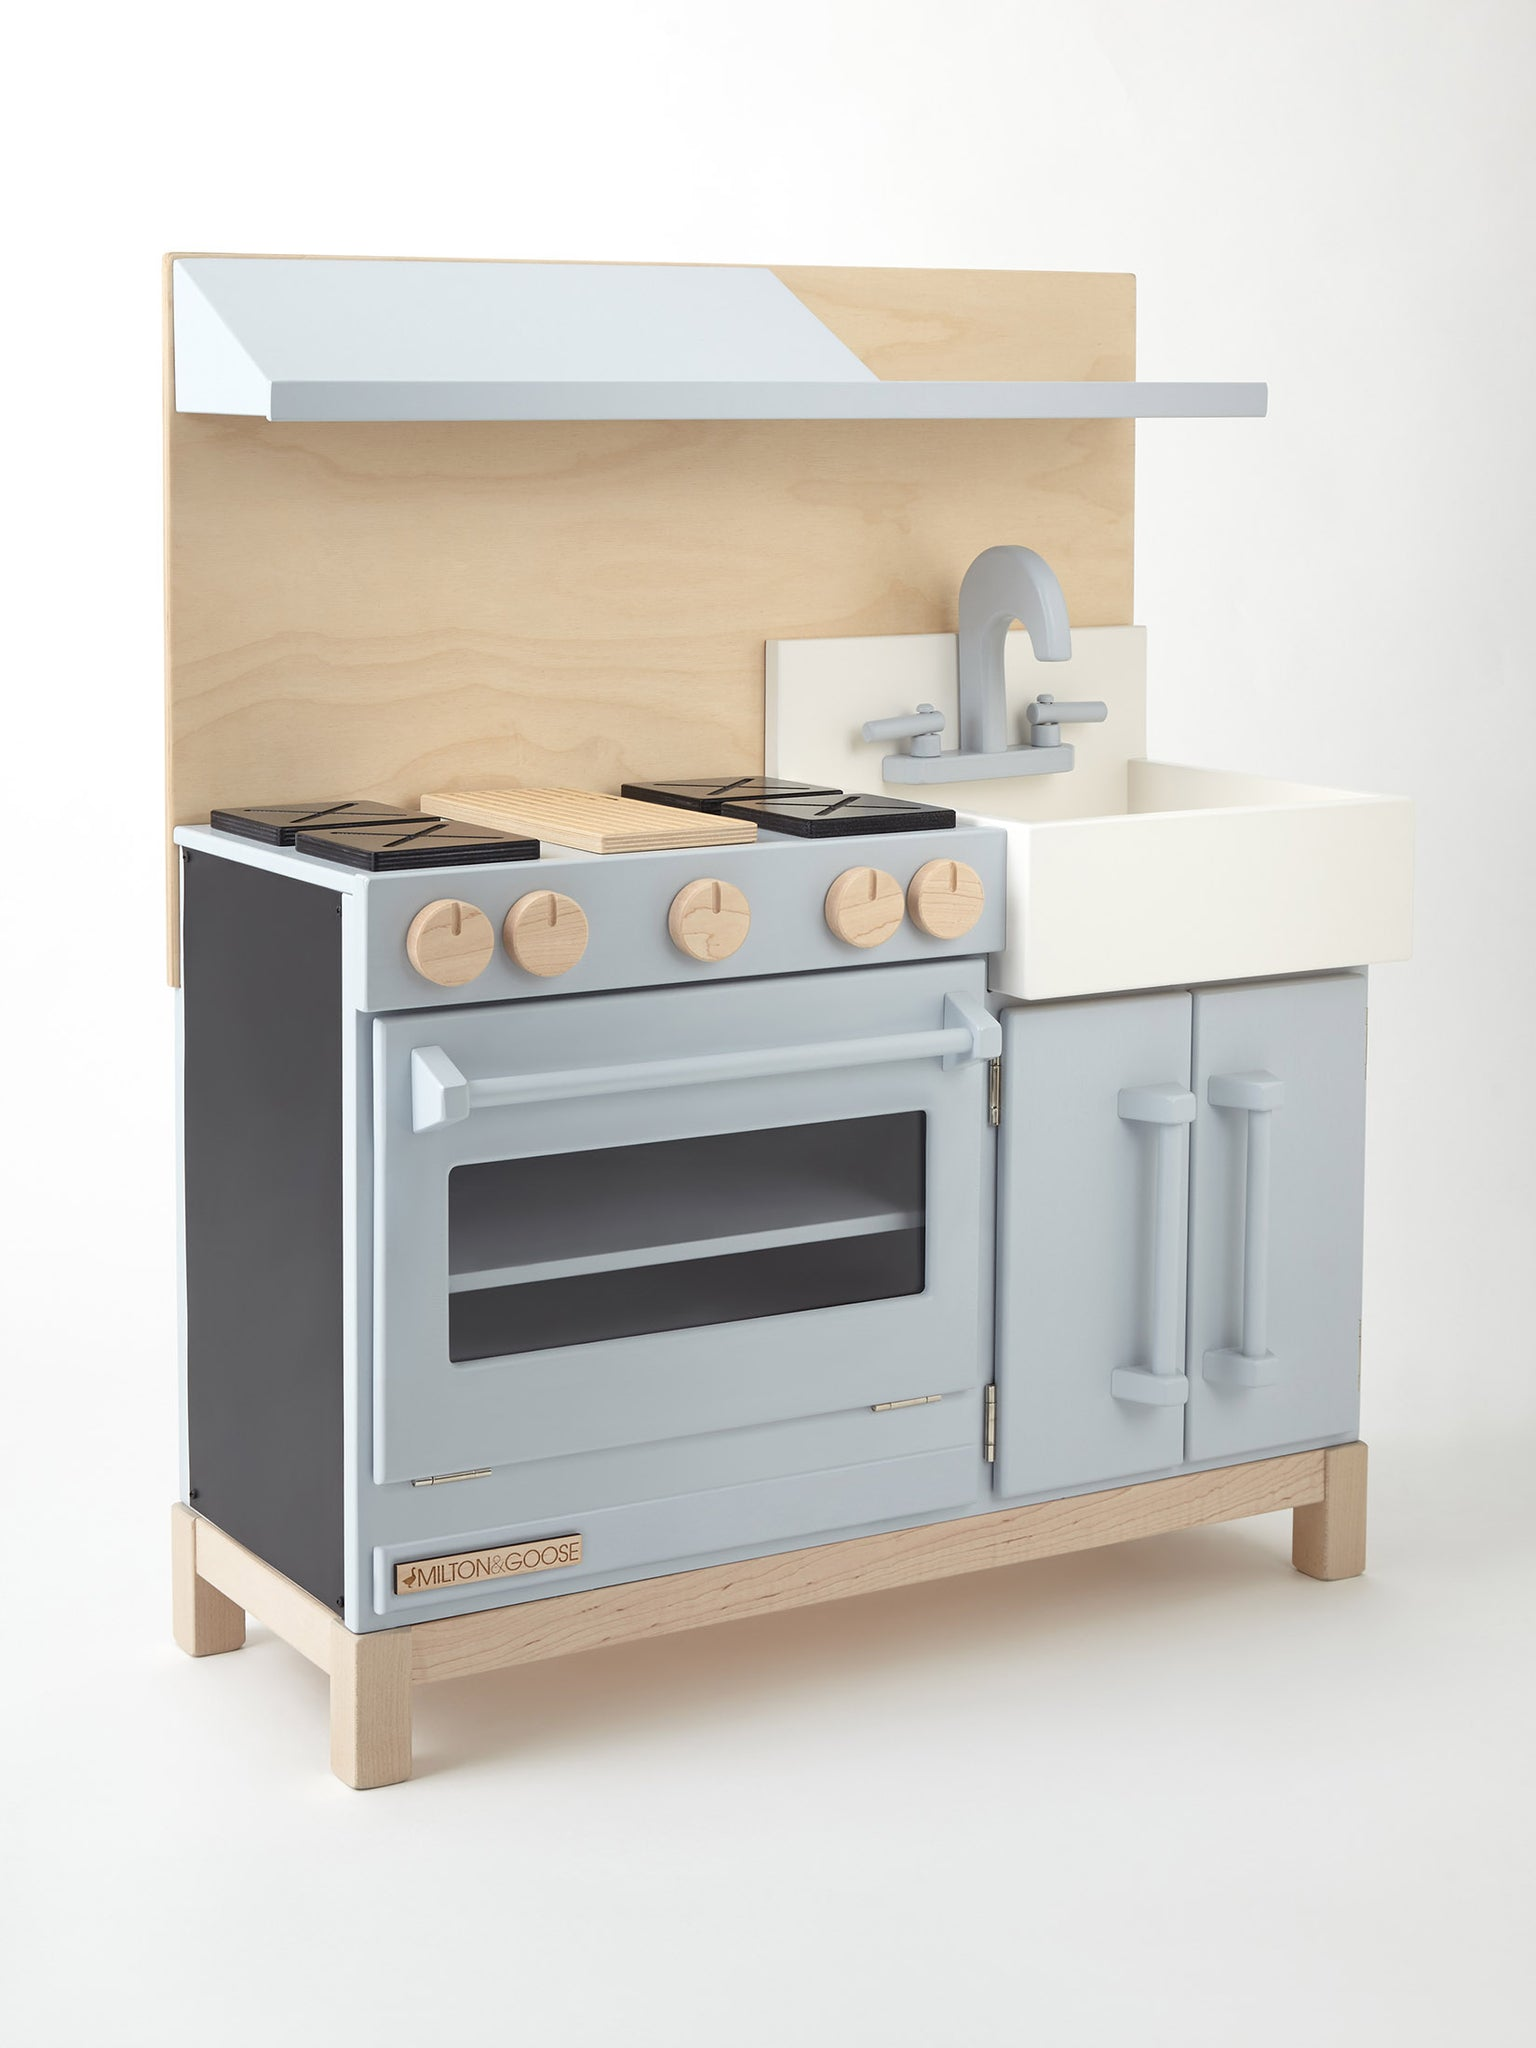 ... Spencer And York White Classic Wooden Play Kitchen For Children By  Milton U0026 Goose ...